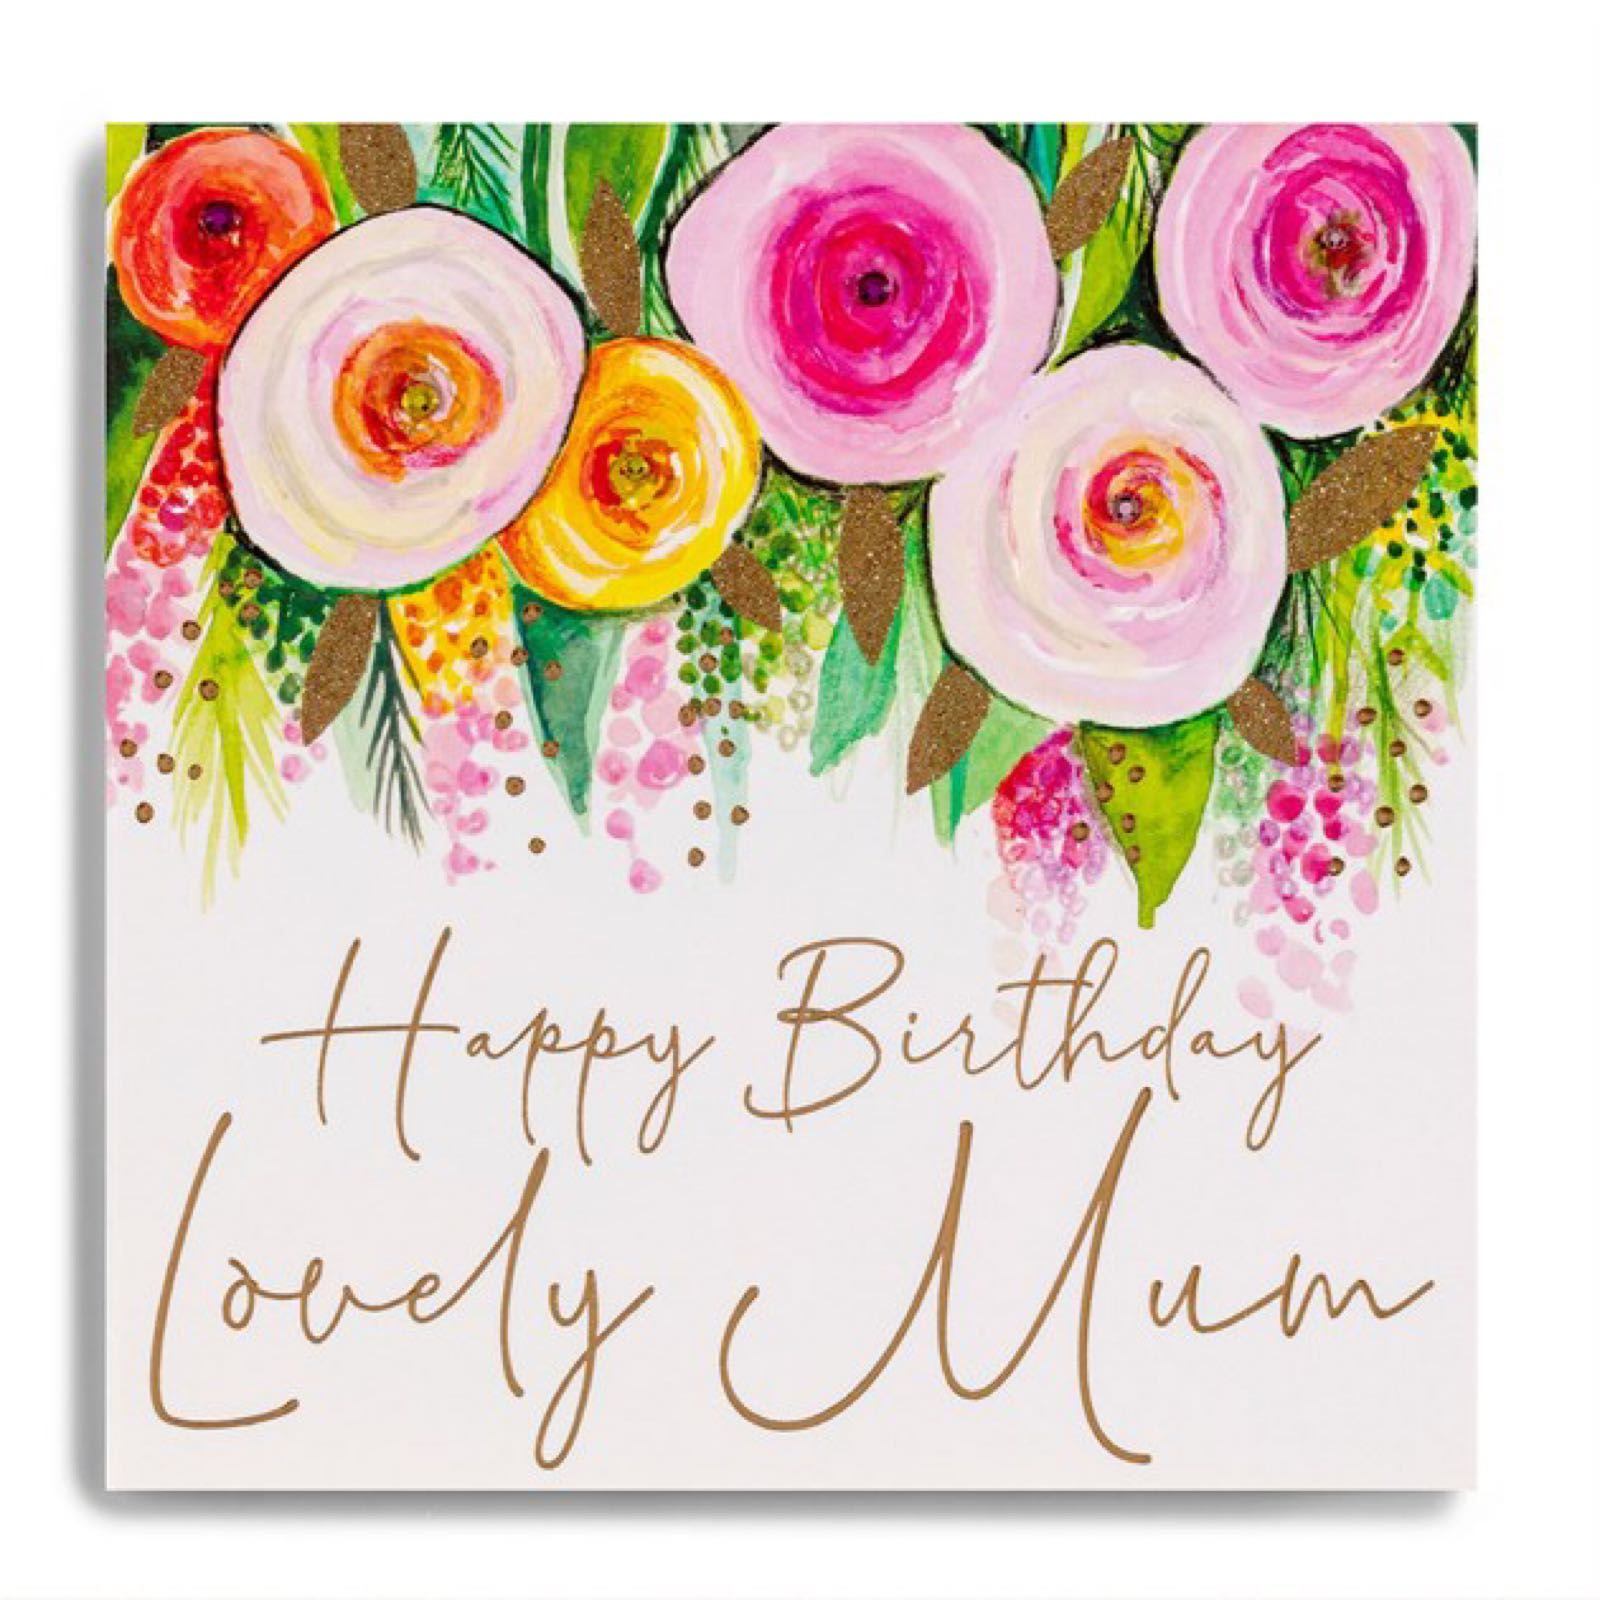 Janie Wilson lovely mum card